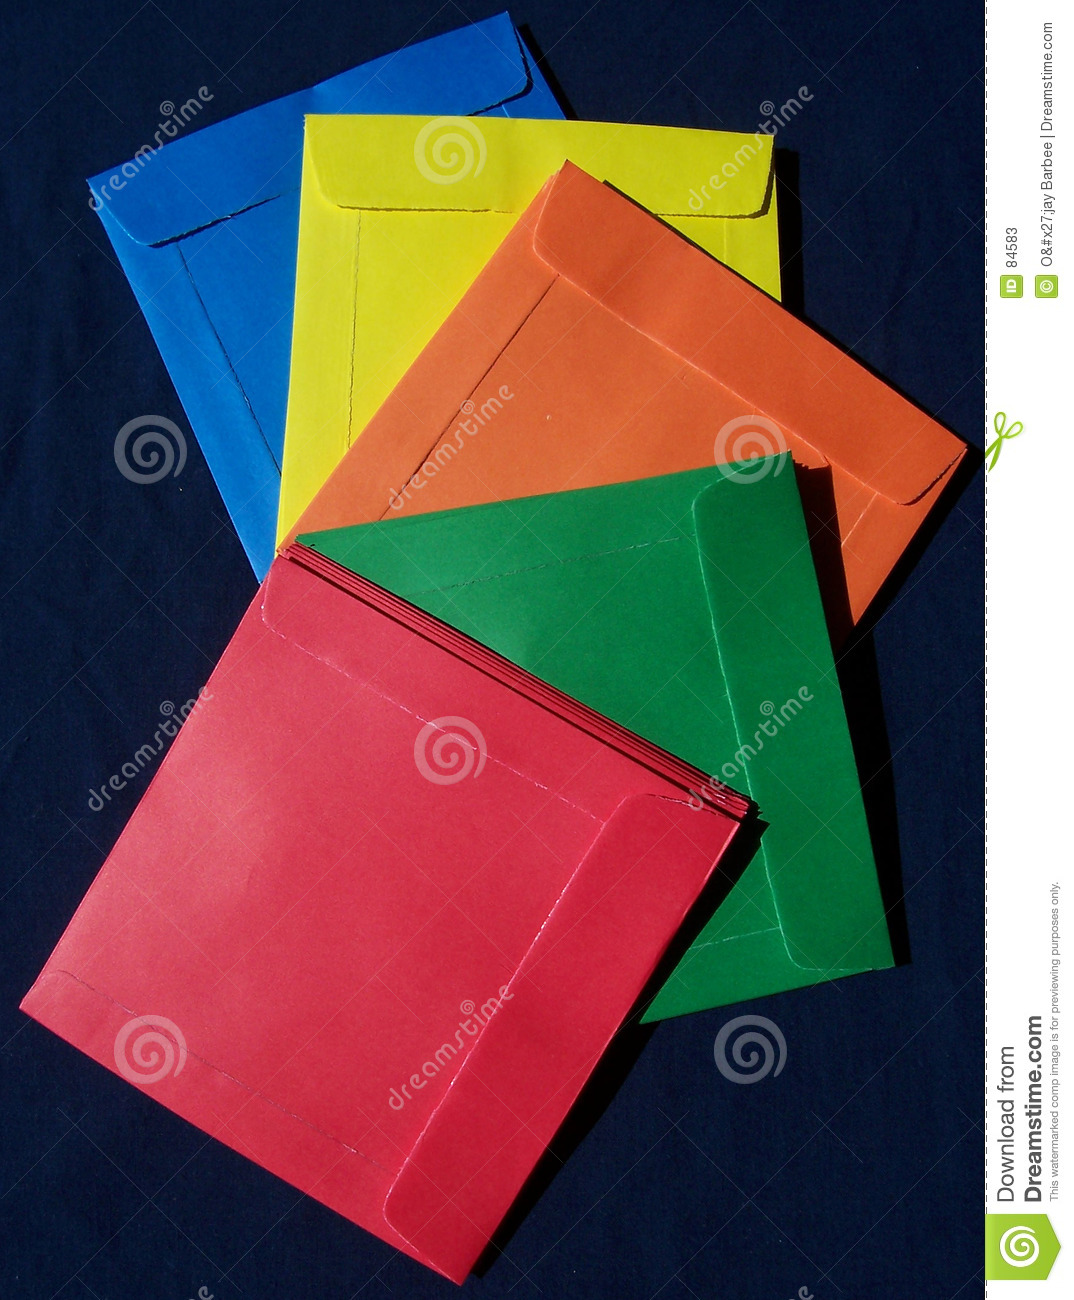 Paper CD Covers stock image  Image of computer, envelope - 84583